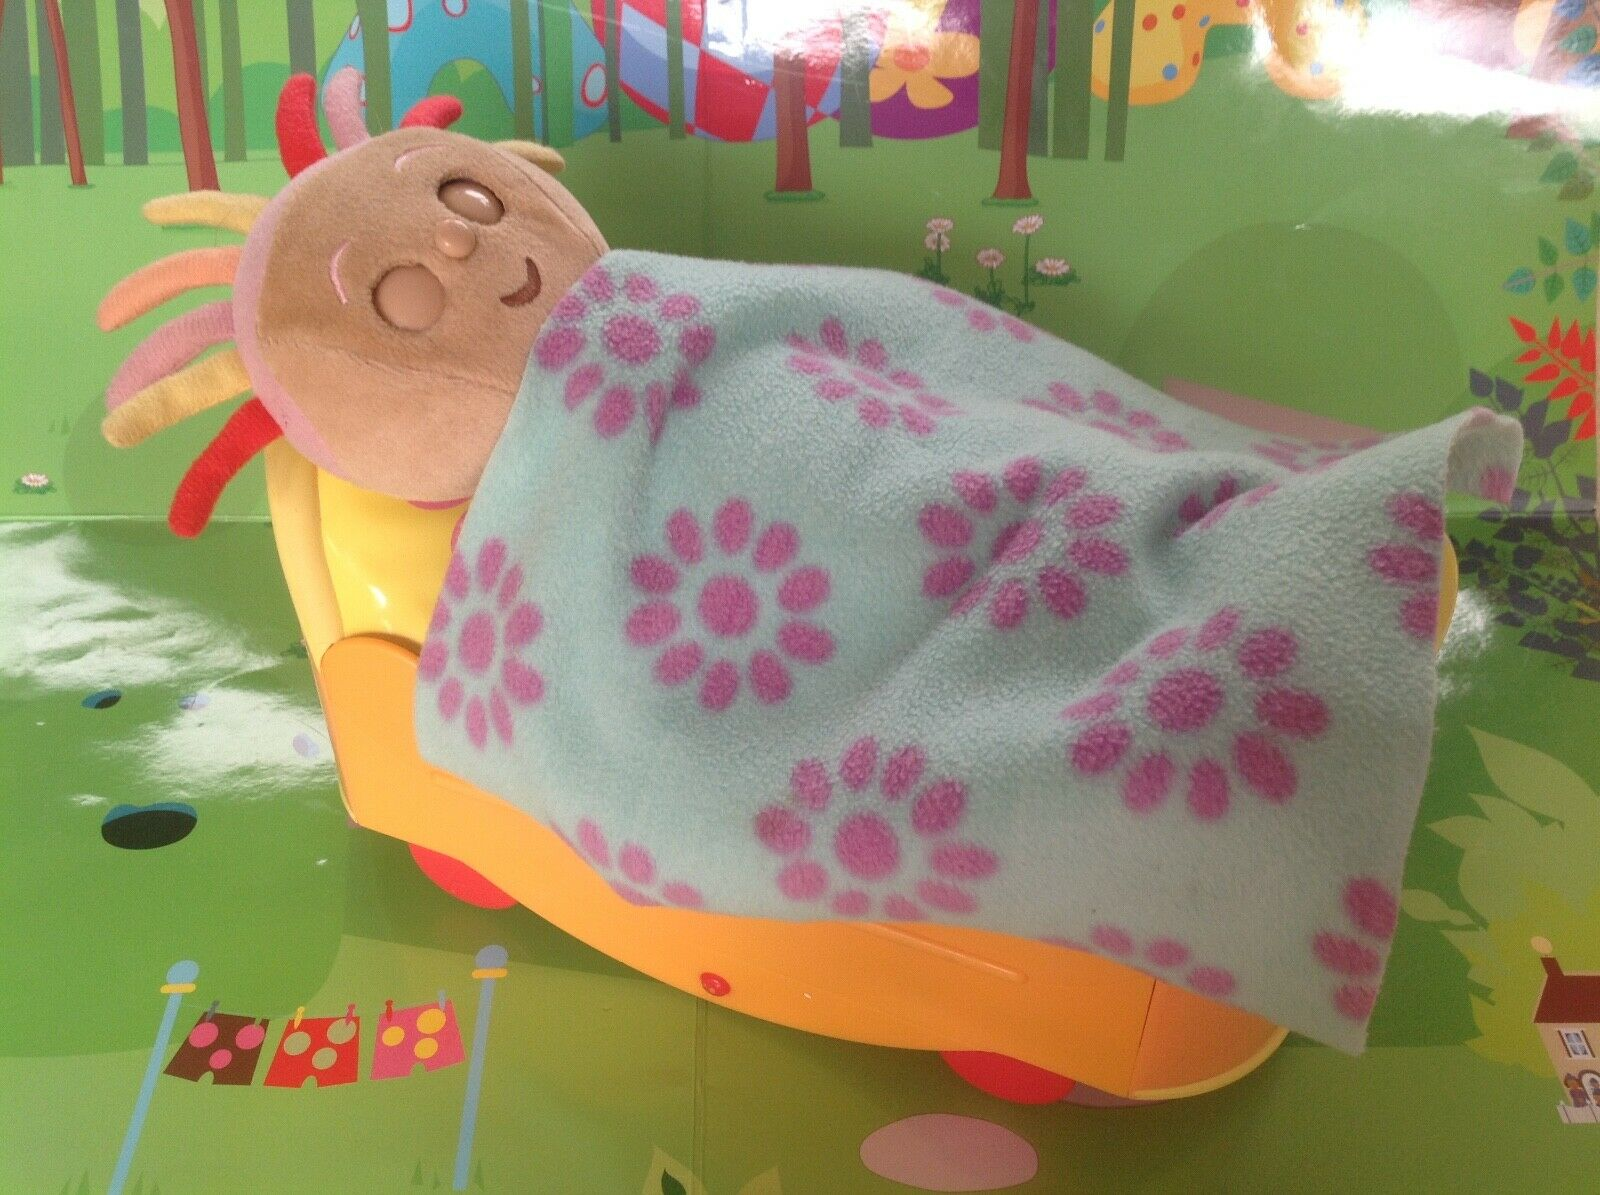 In The Night Garden Upsy Daisy Musical Moving Bed Playset - Sounds Moves - Rare